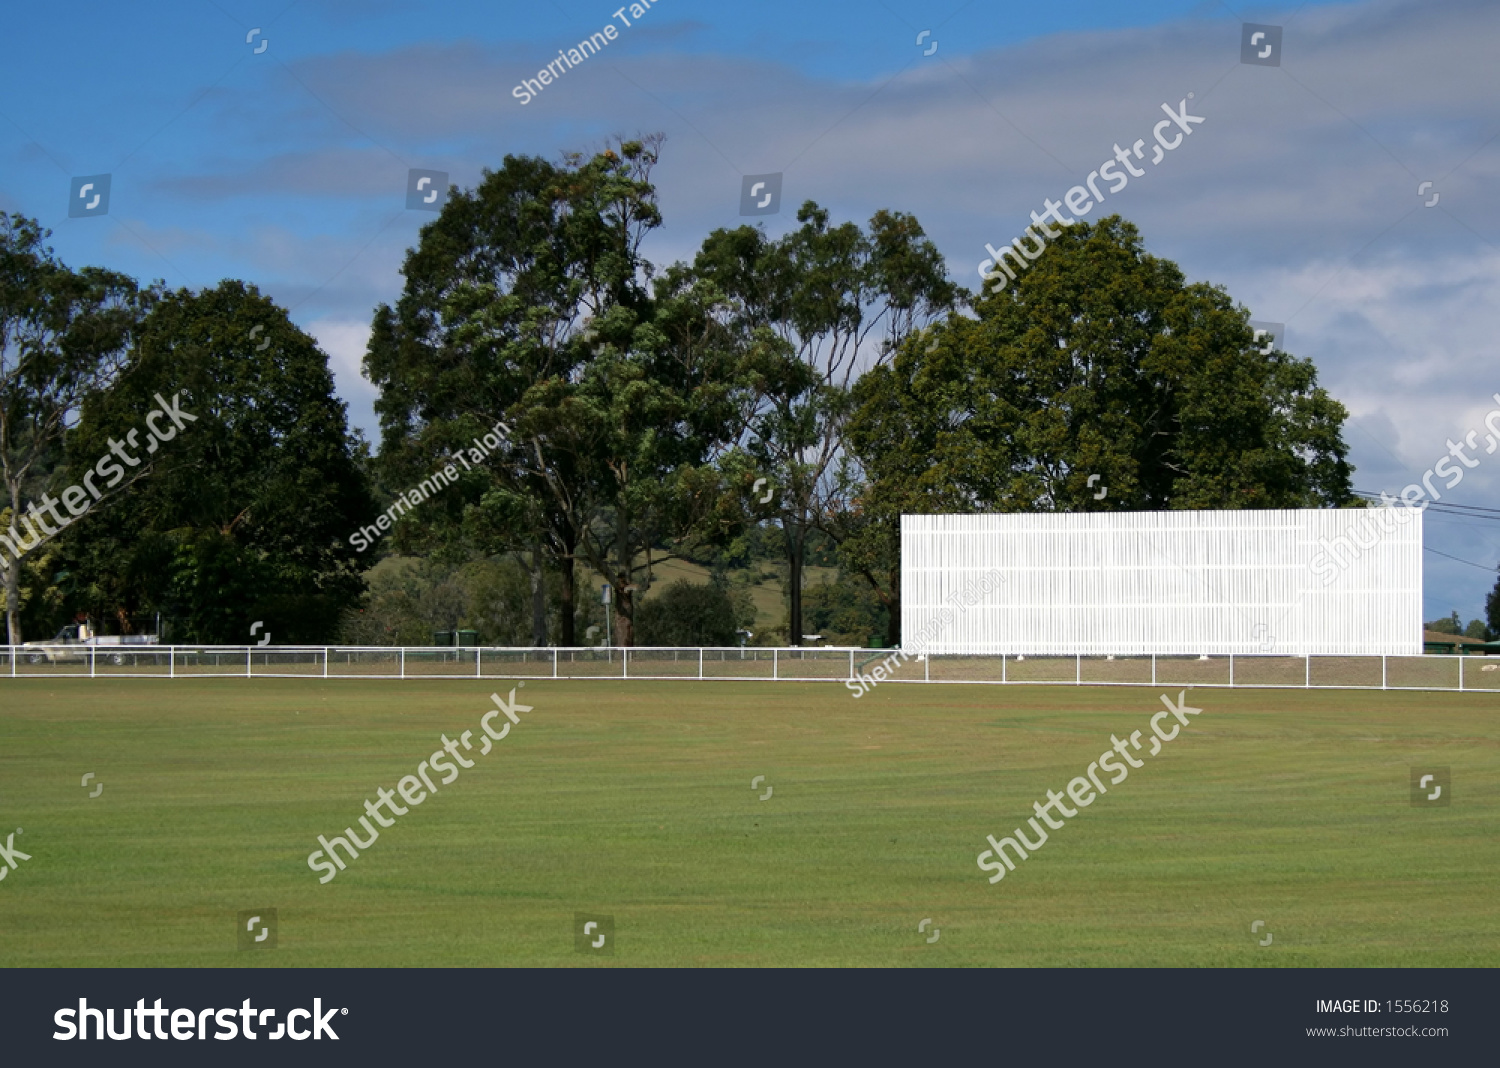 Community Cricket Ground With Blank White Sign Stock Photo 1556218 ...: shutterstock.com/pic-1556218/stock-photo-community-cricket-ground...